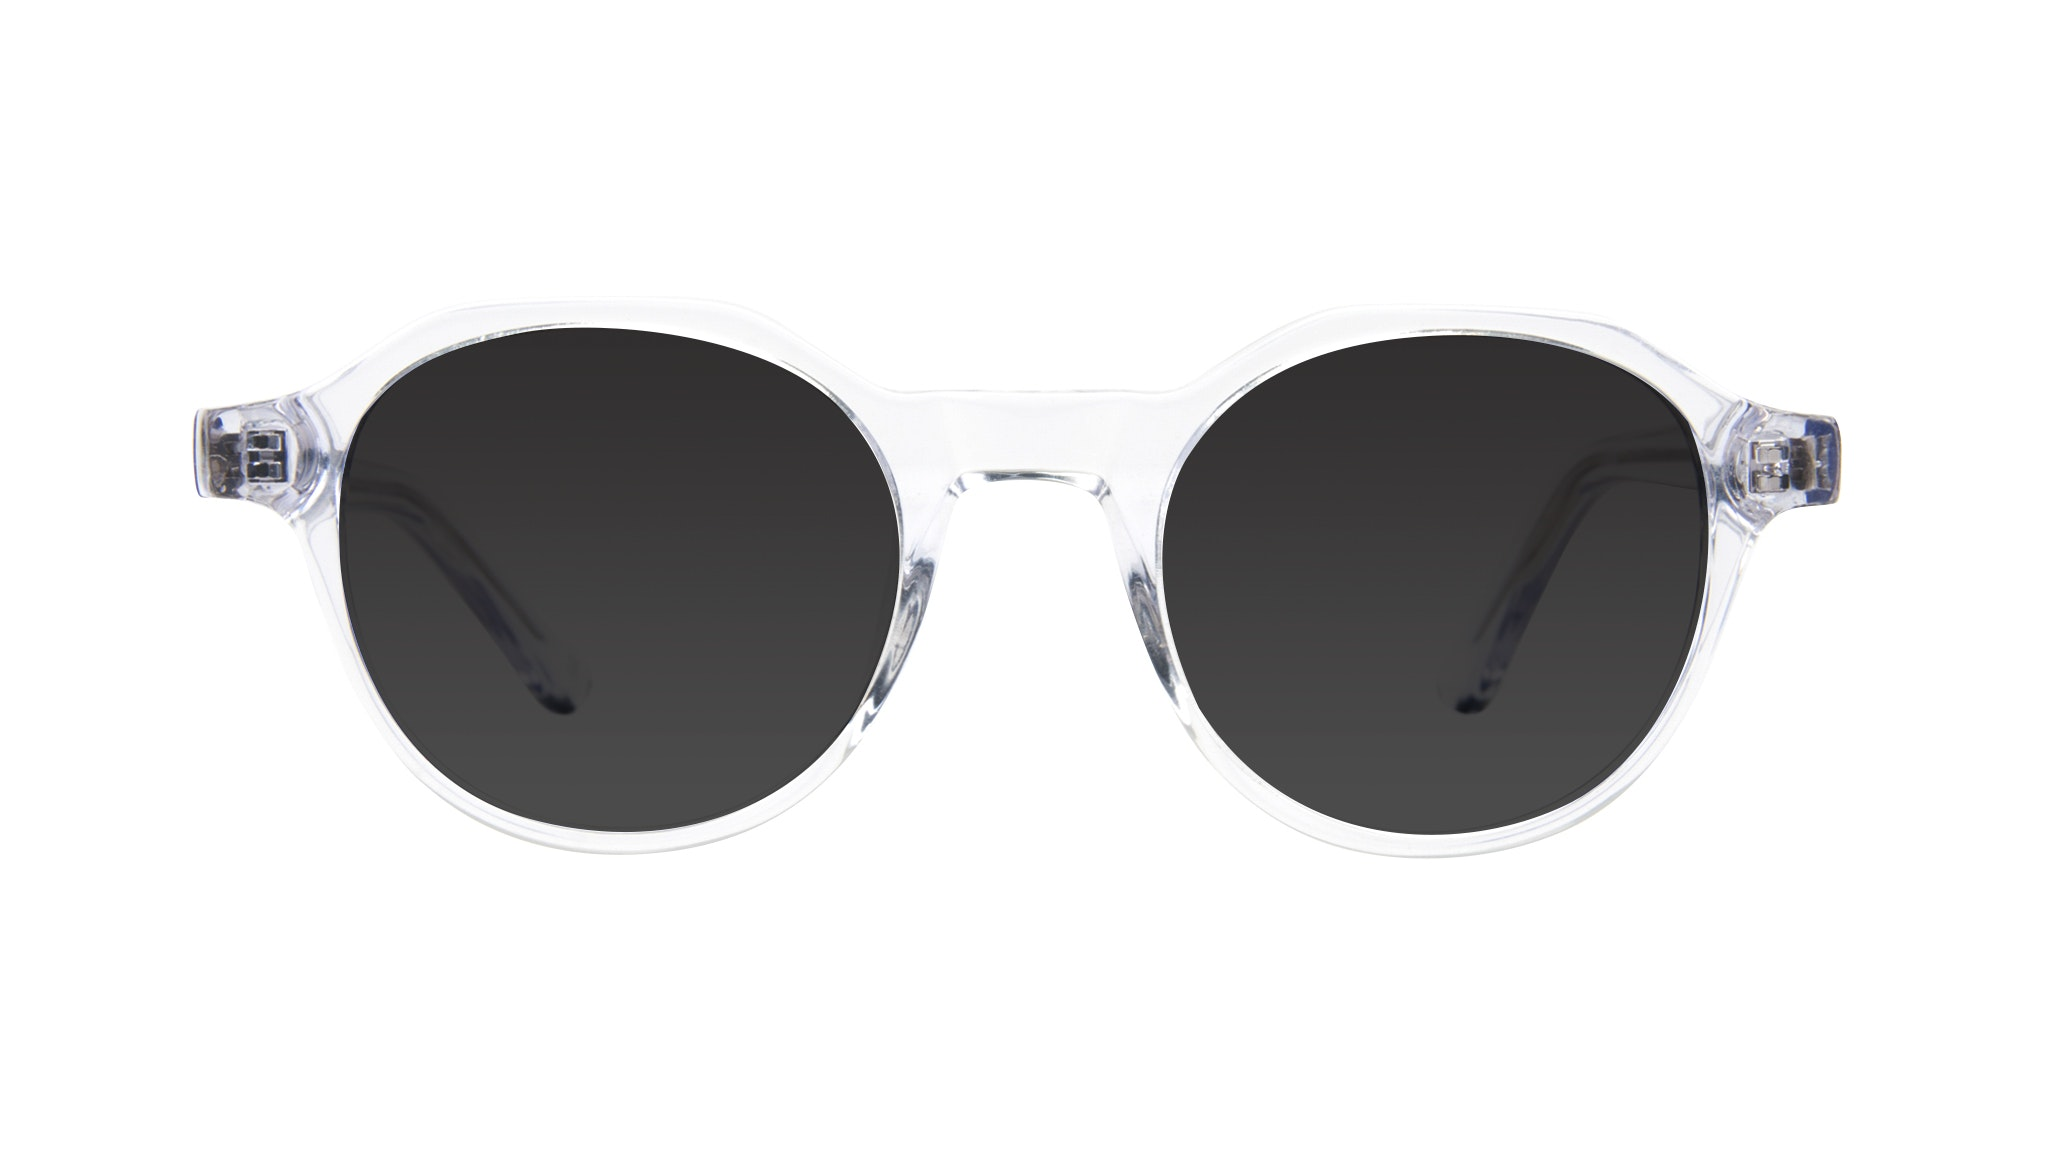 Affordable Fashion Glasses Round Sunglasses Men Form Diamond